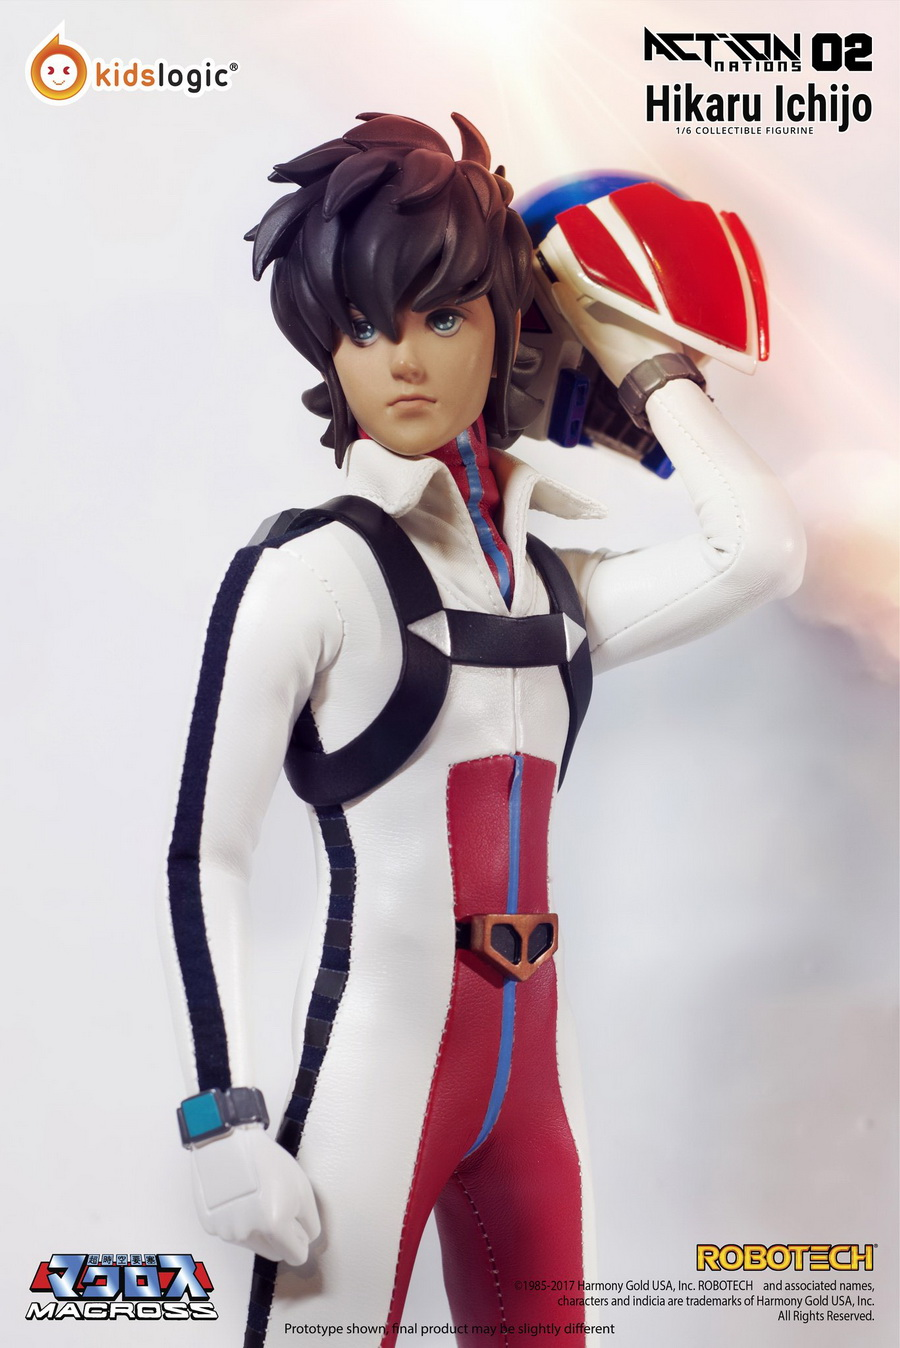 Robotech - NEW PRODUCT: Kids Logic: 1/6 Space Fortress (Overtime Fortress)-Hikaru Ichijo/一辉动动偶人AN02# 20401510